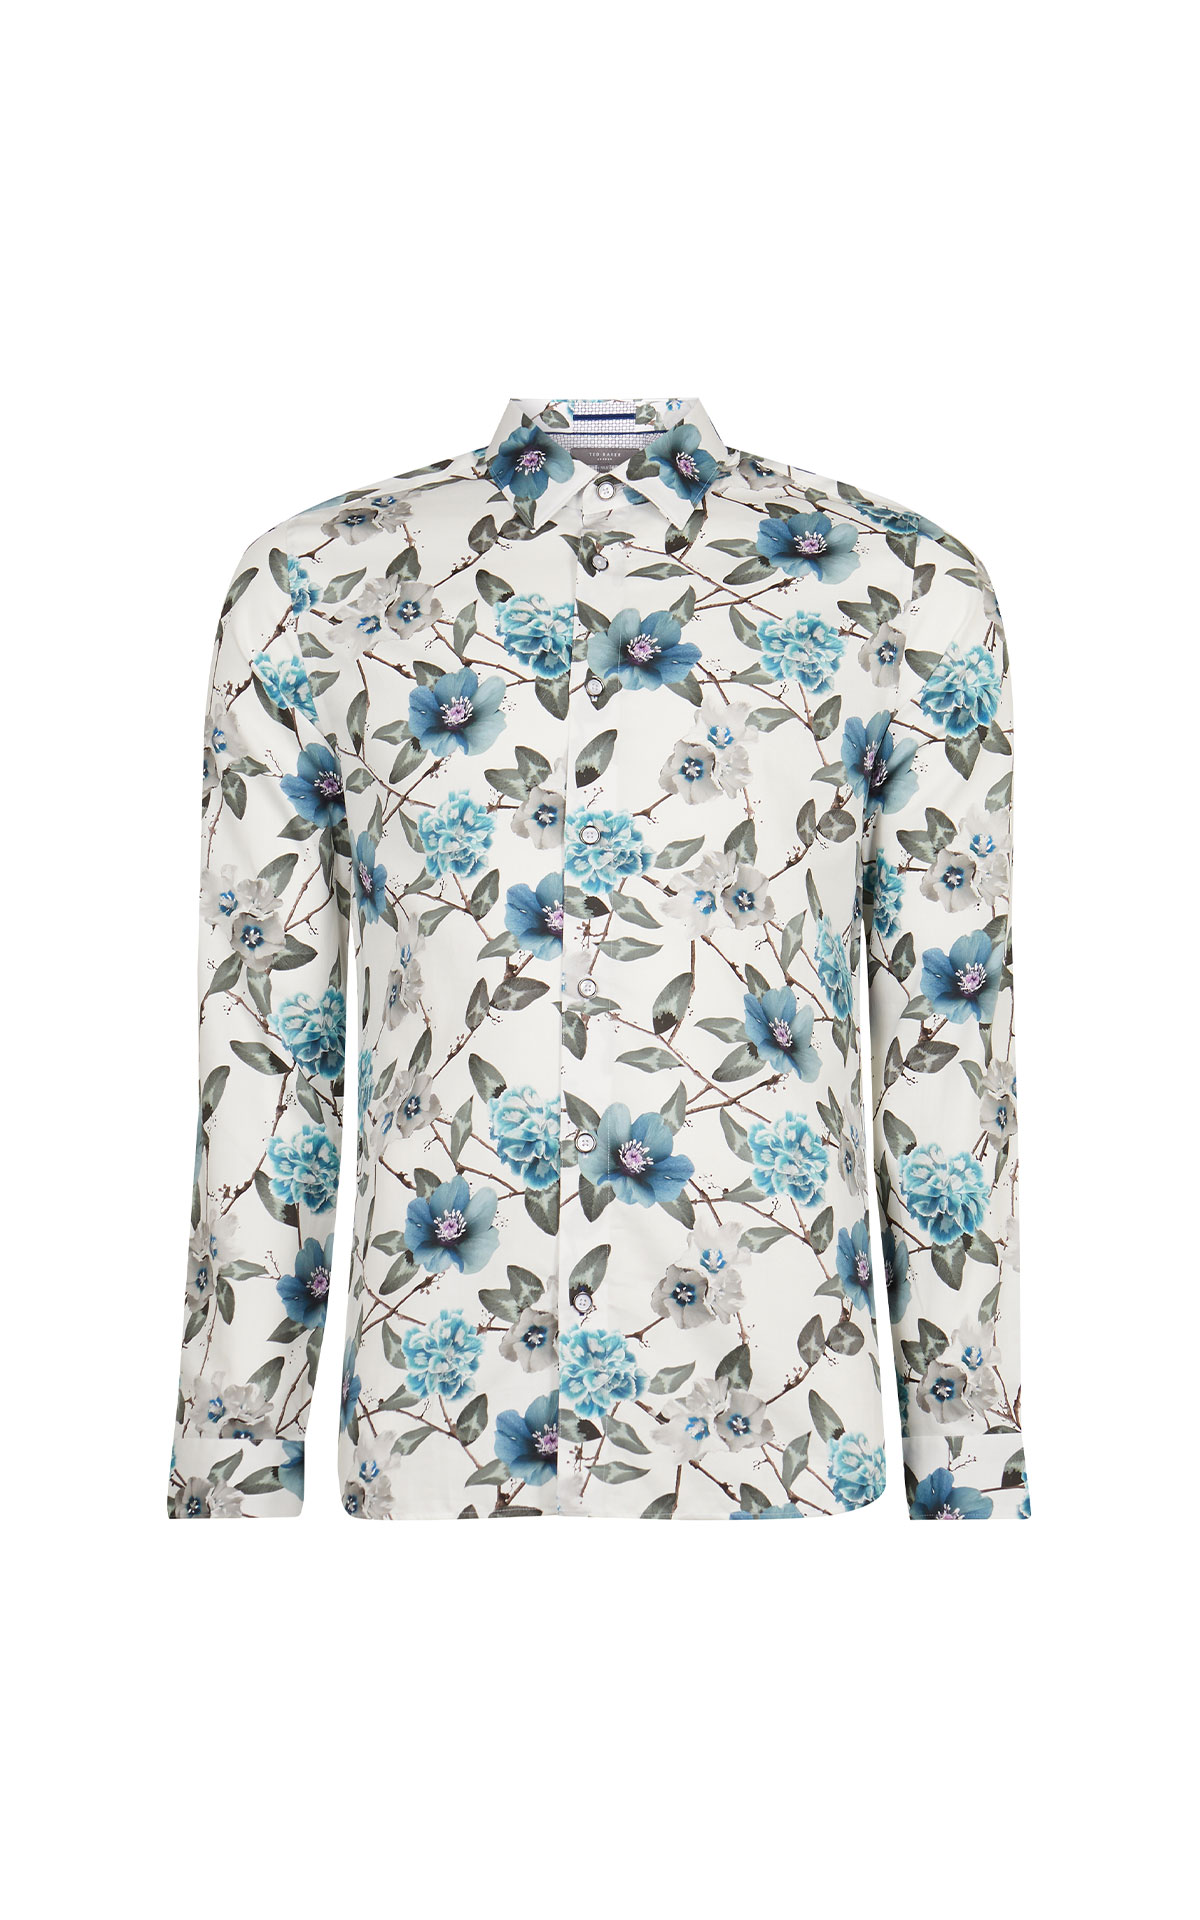 Ted Baker Fann floral shirt from Bicester Village